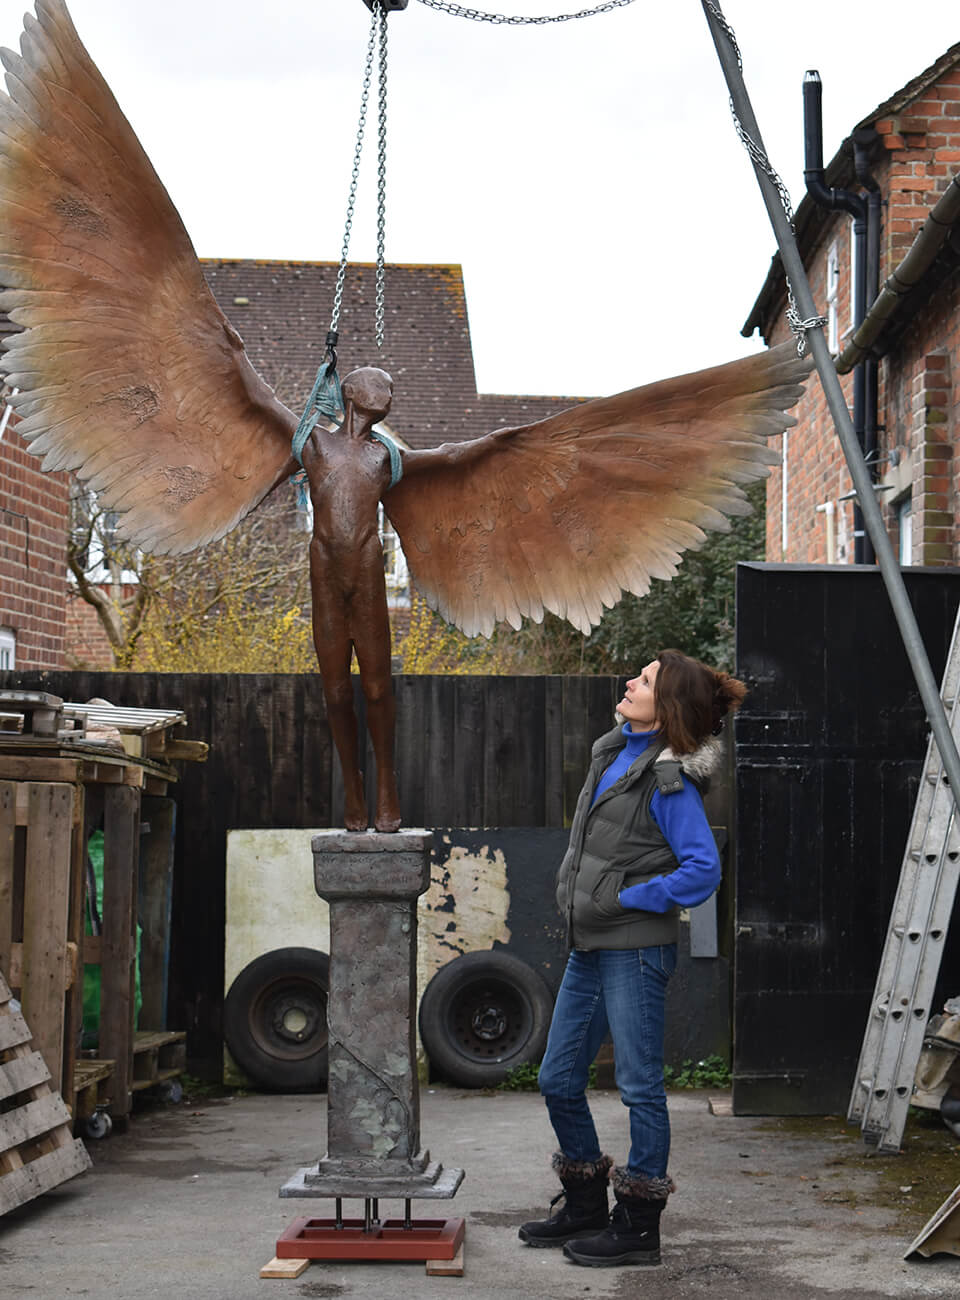 Icarus I resin casting